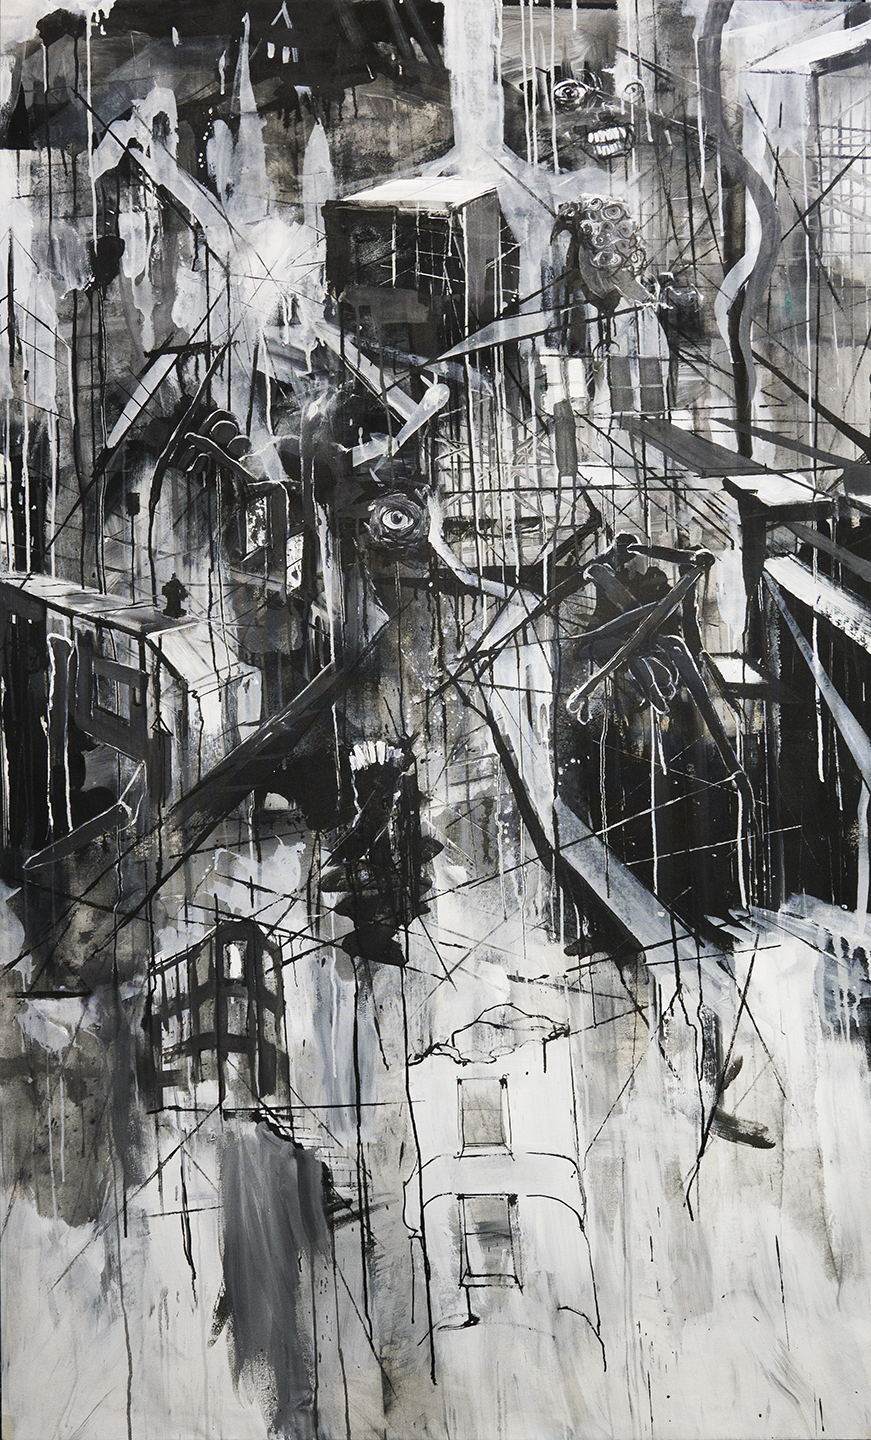 "It Moves, mixed media on canvas, 45x80"", 2018"